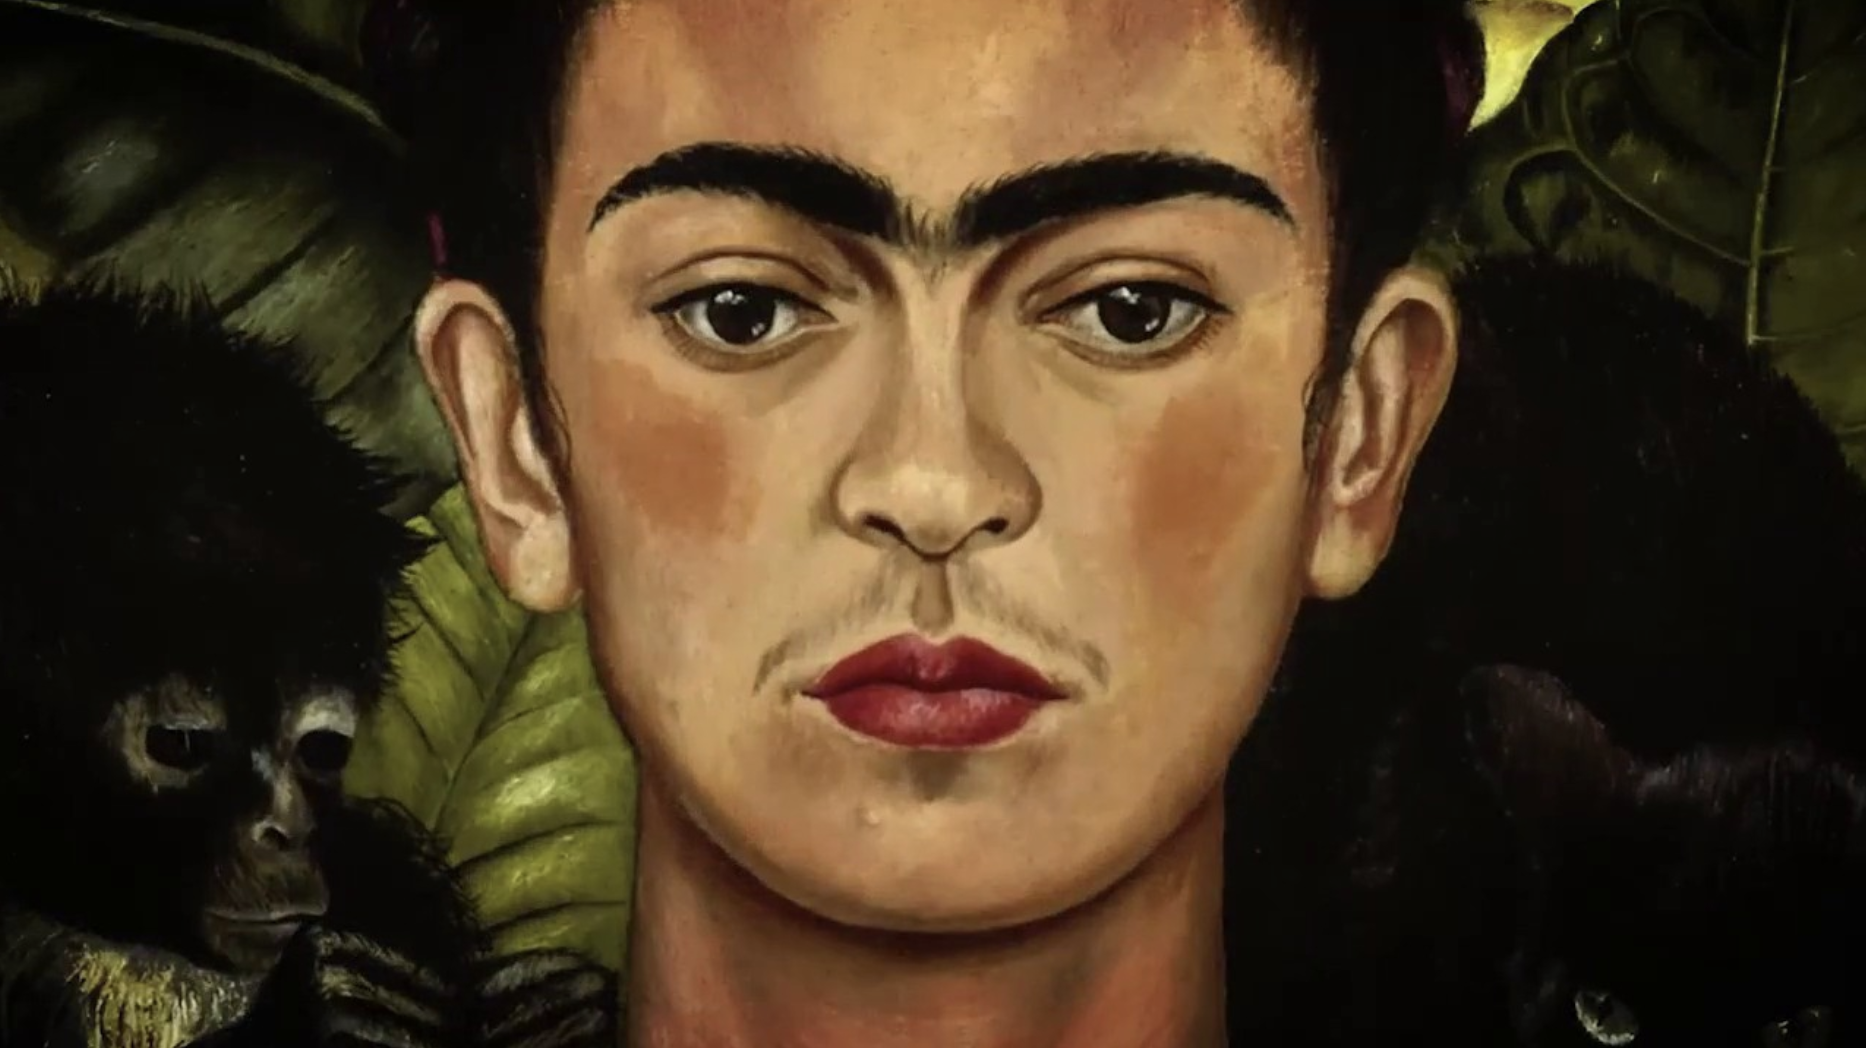 Self-portrait by Frida Kalho